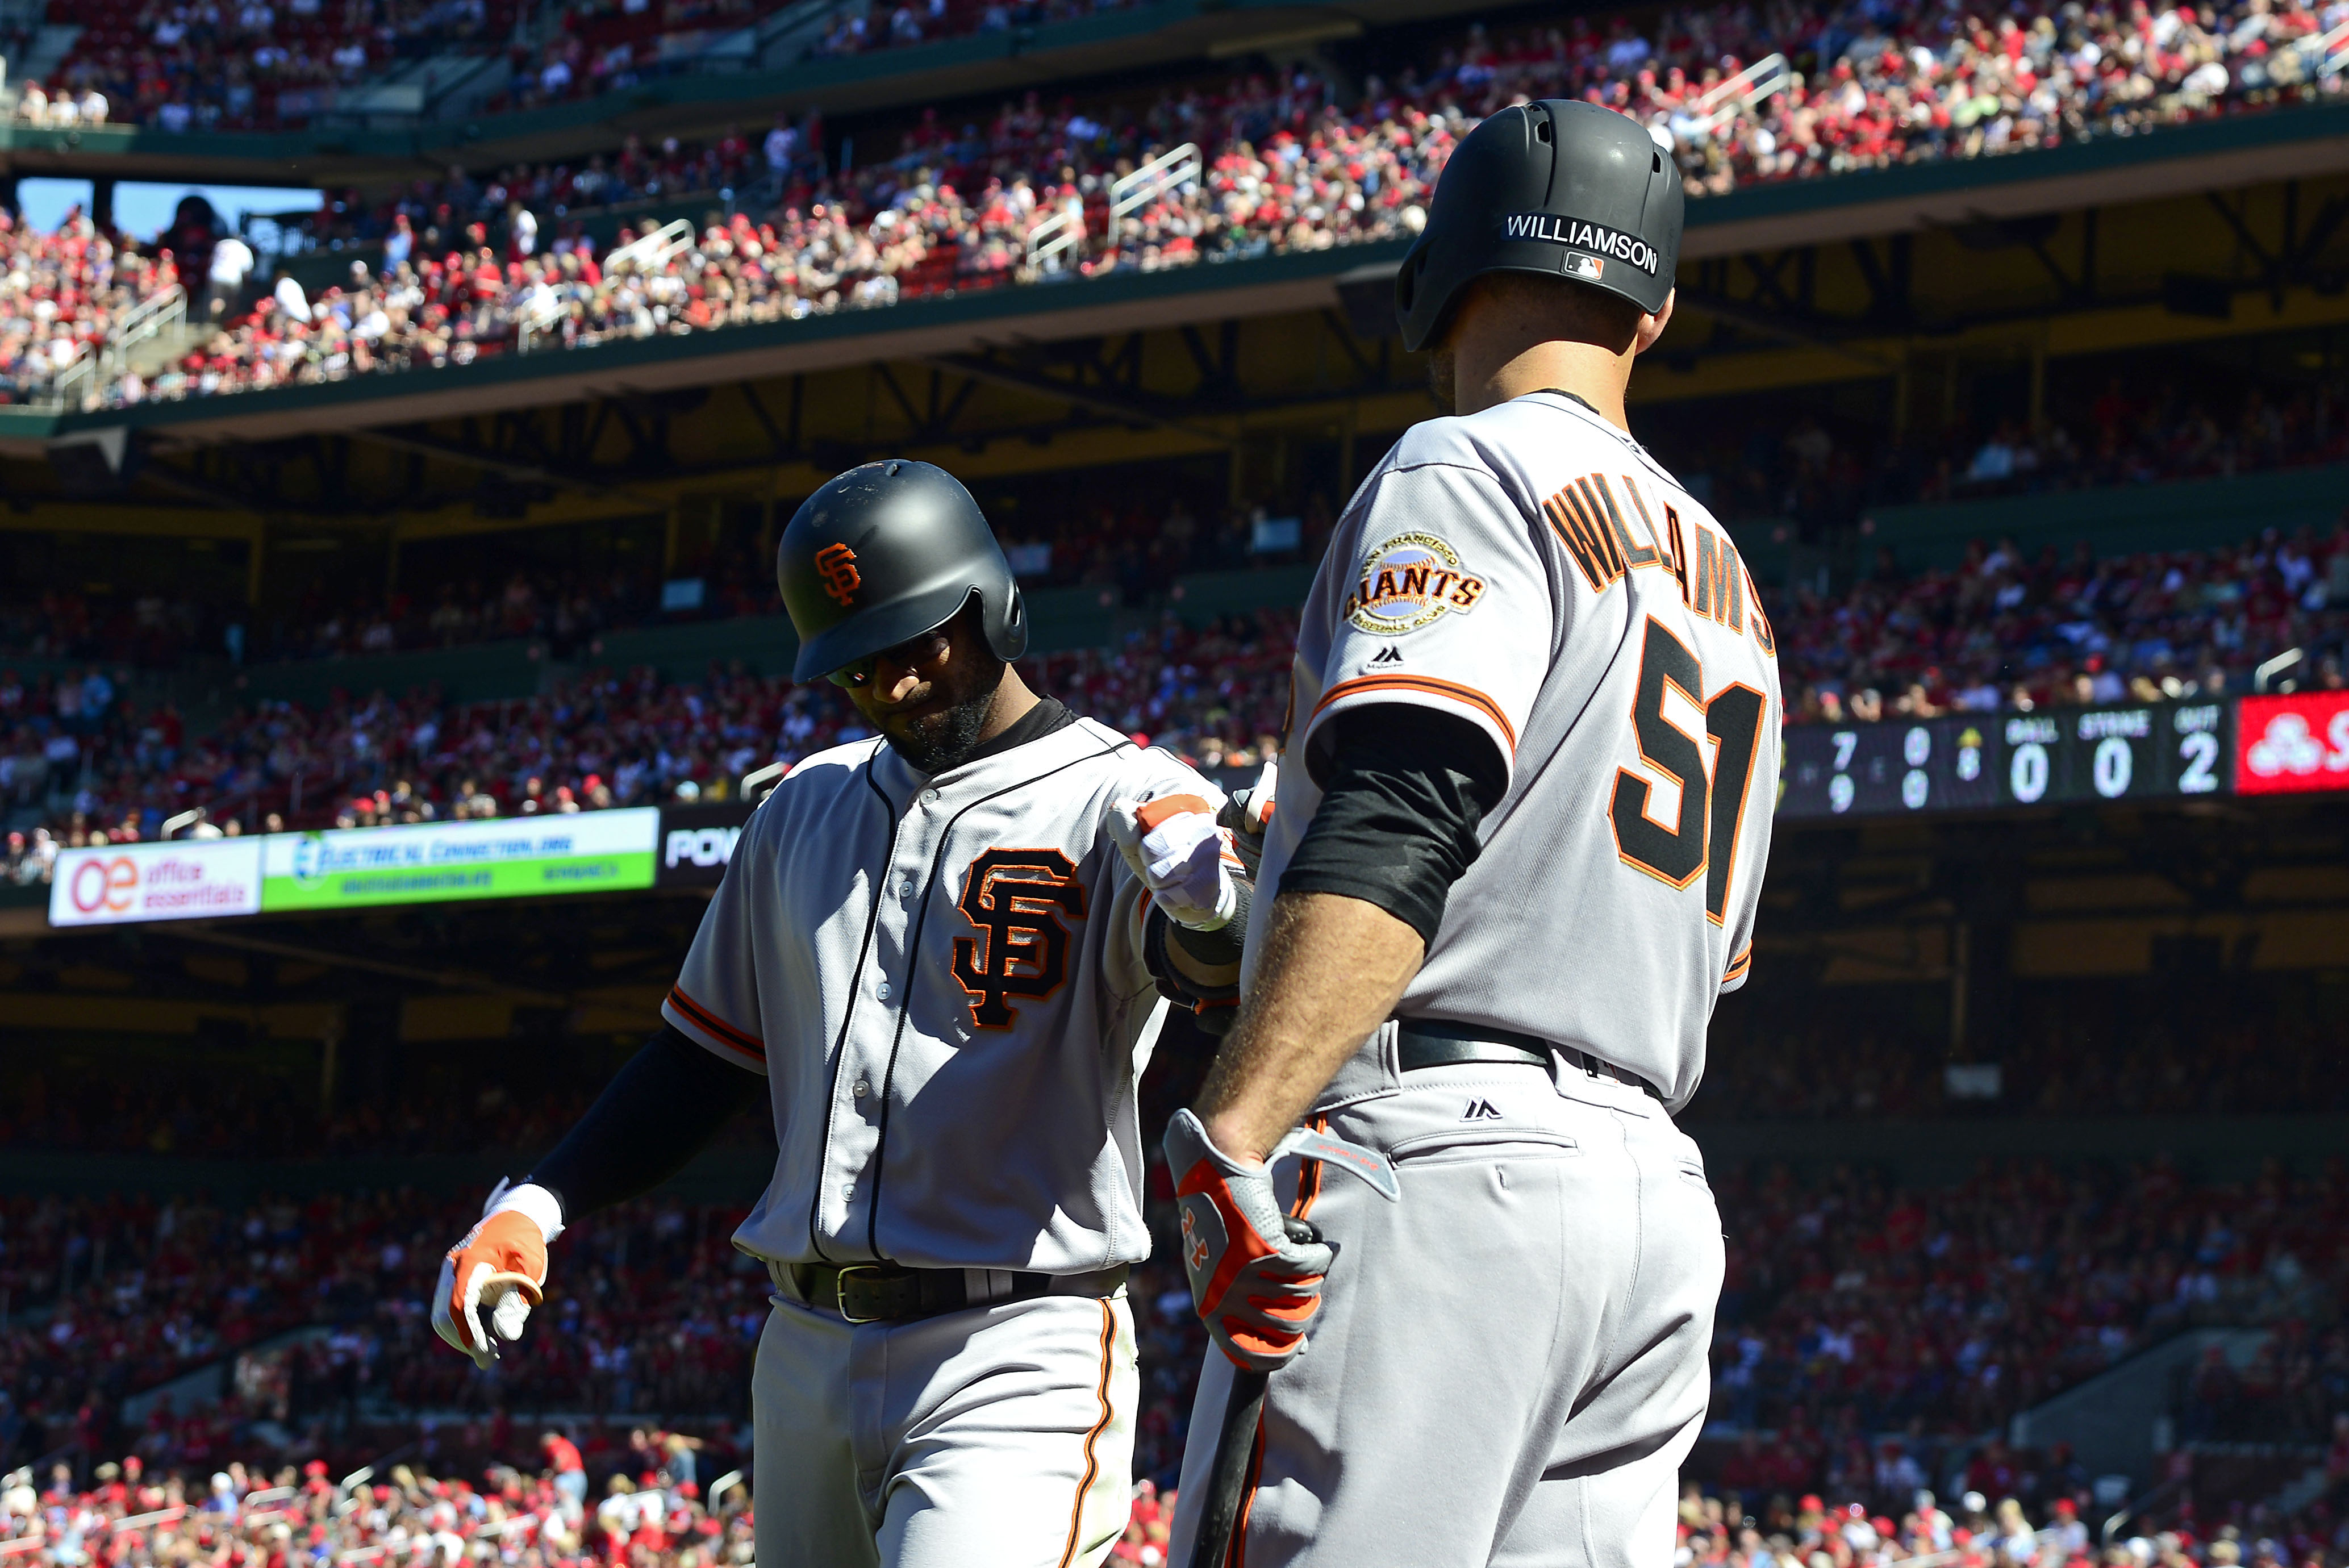 10068560-mlb-san-francisco-giants-at-st.-louis-cardinals